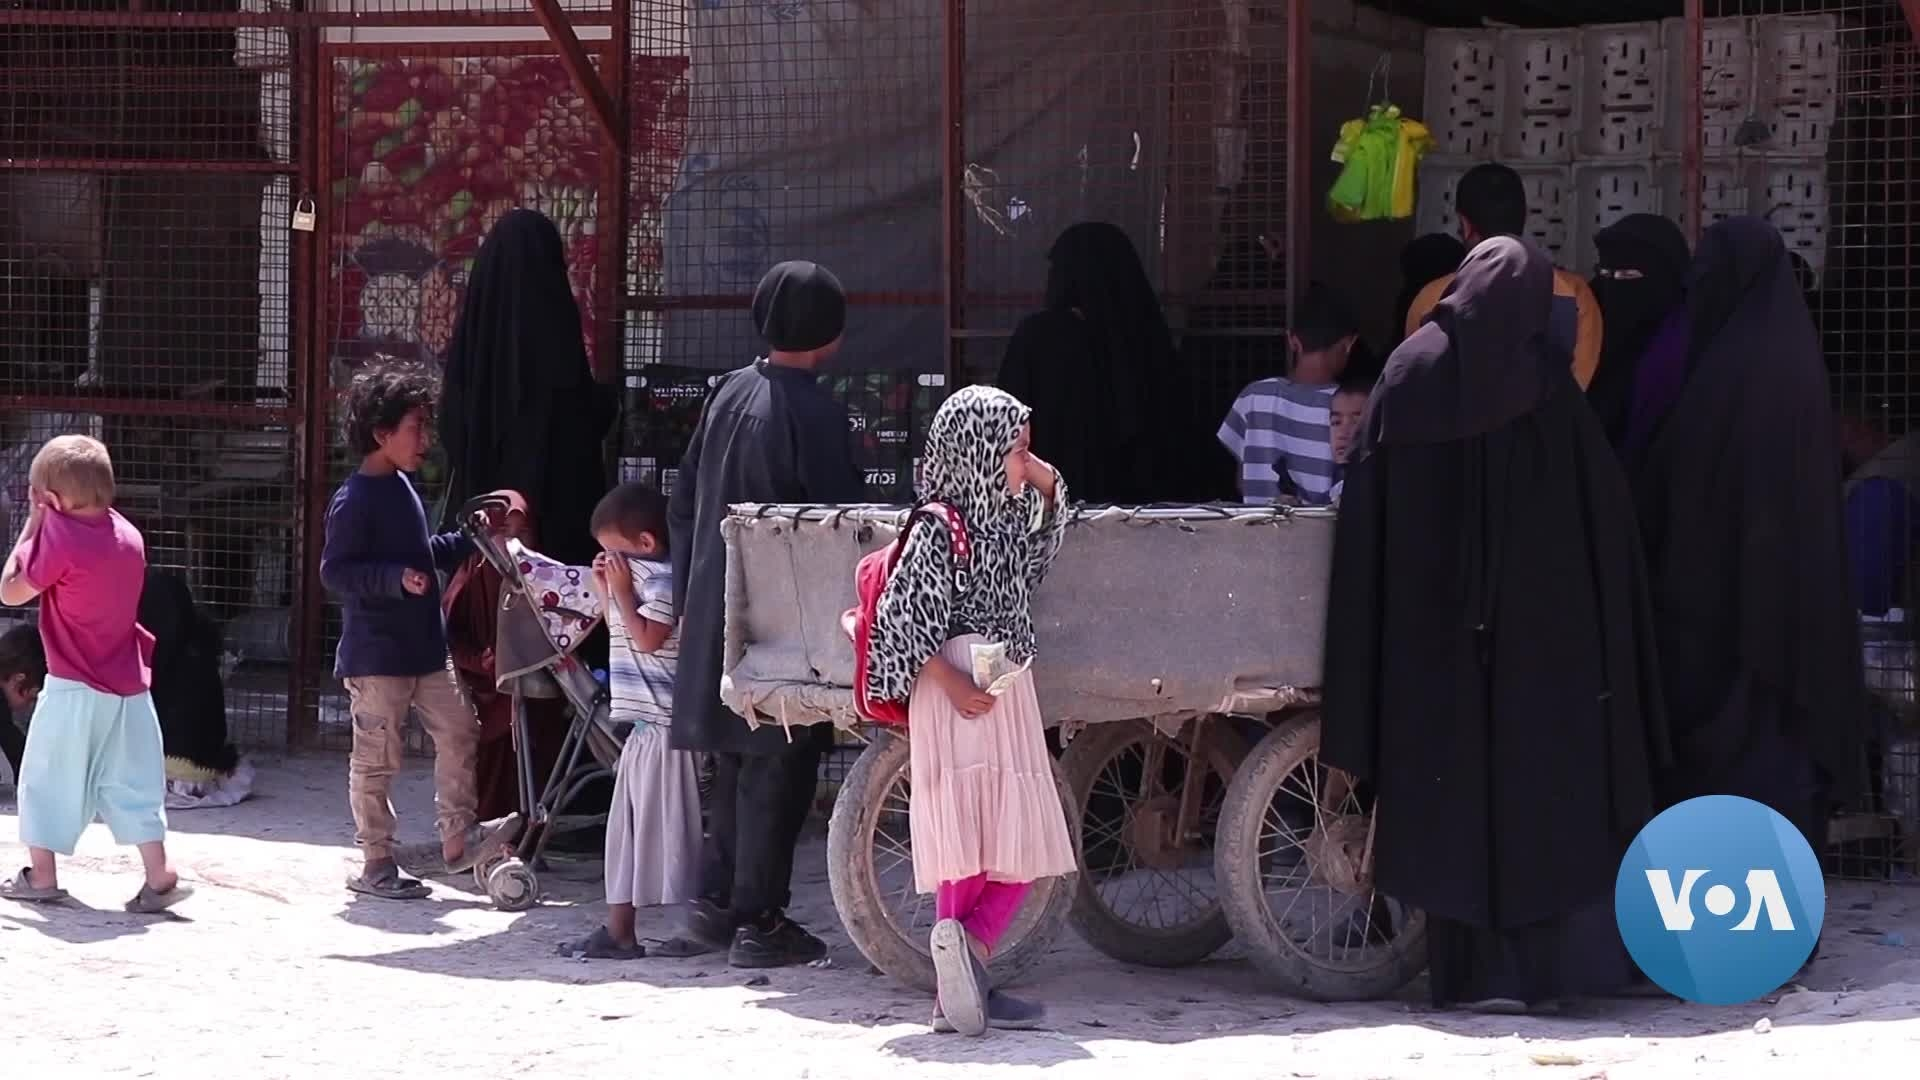 IS Wives Defy Coronavirus Protective Measures in Syria's al-Hol Camp